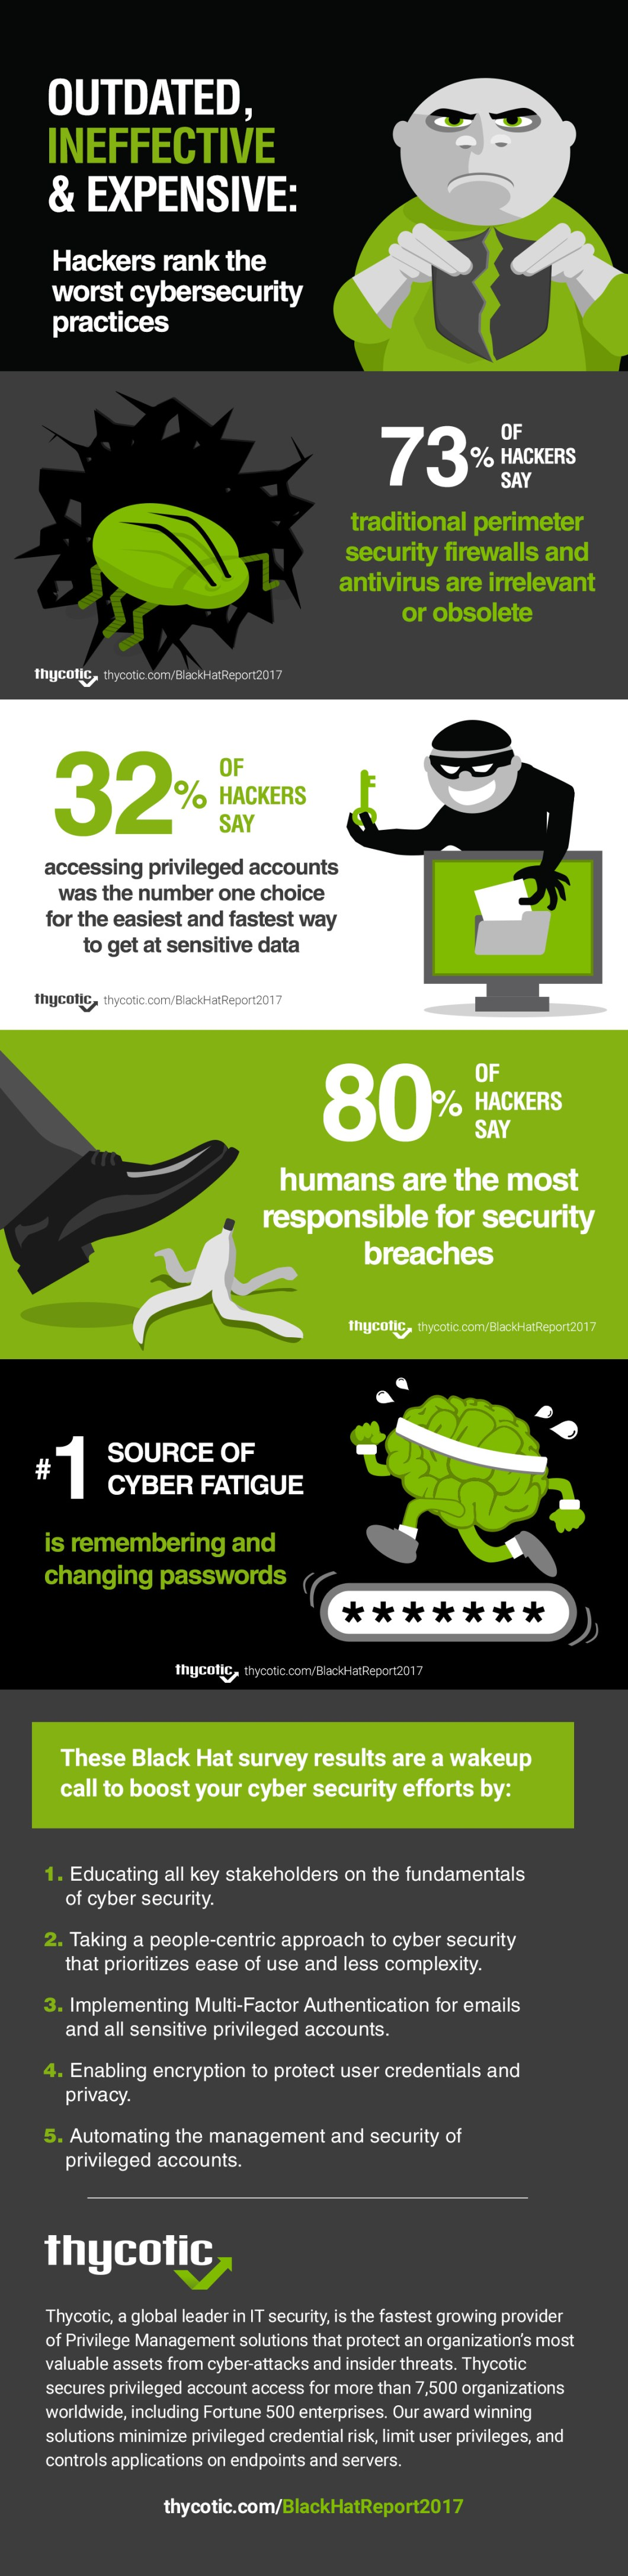 Cybersecurity Practices: The Hackers' Point of View - Infographic